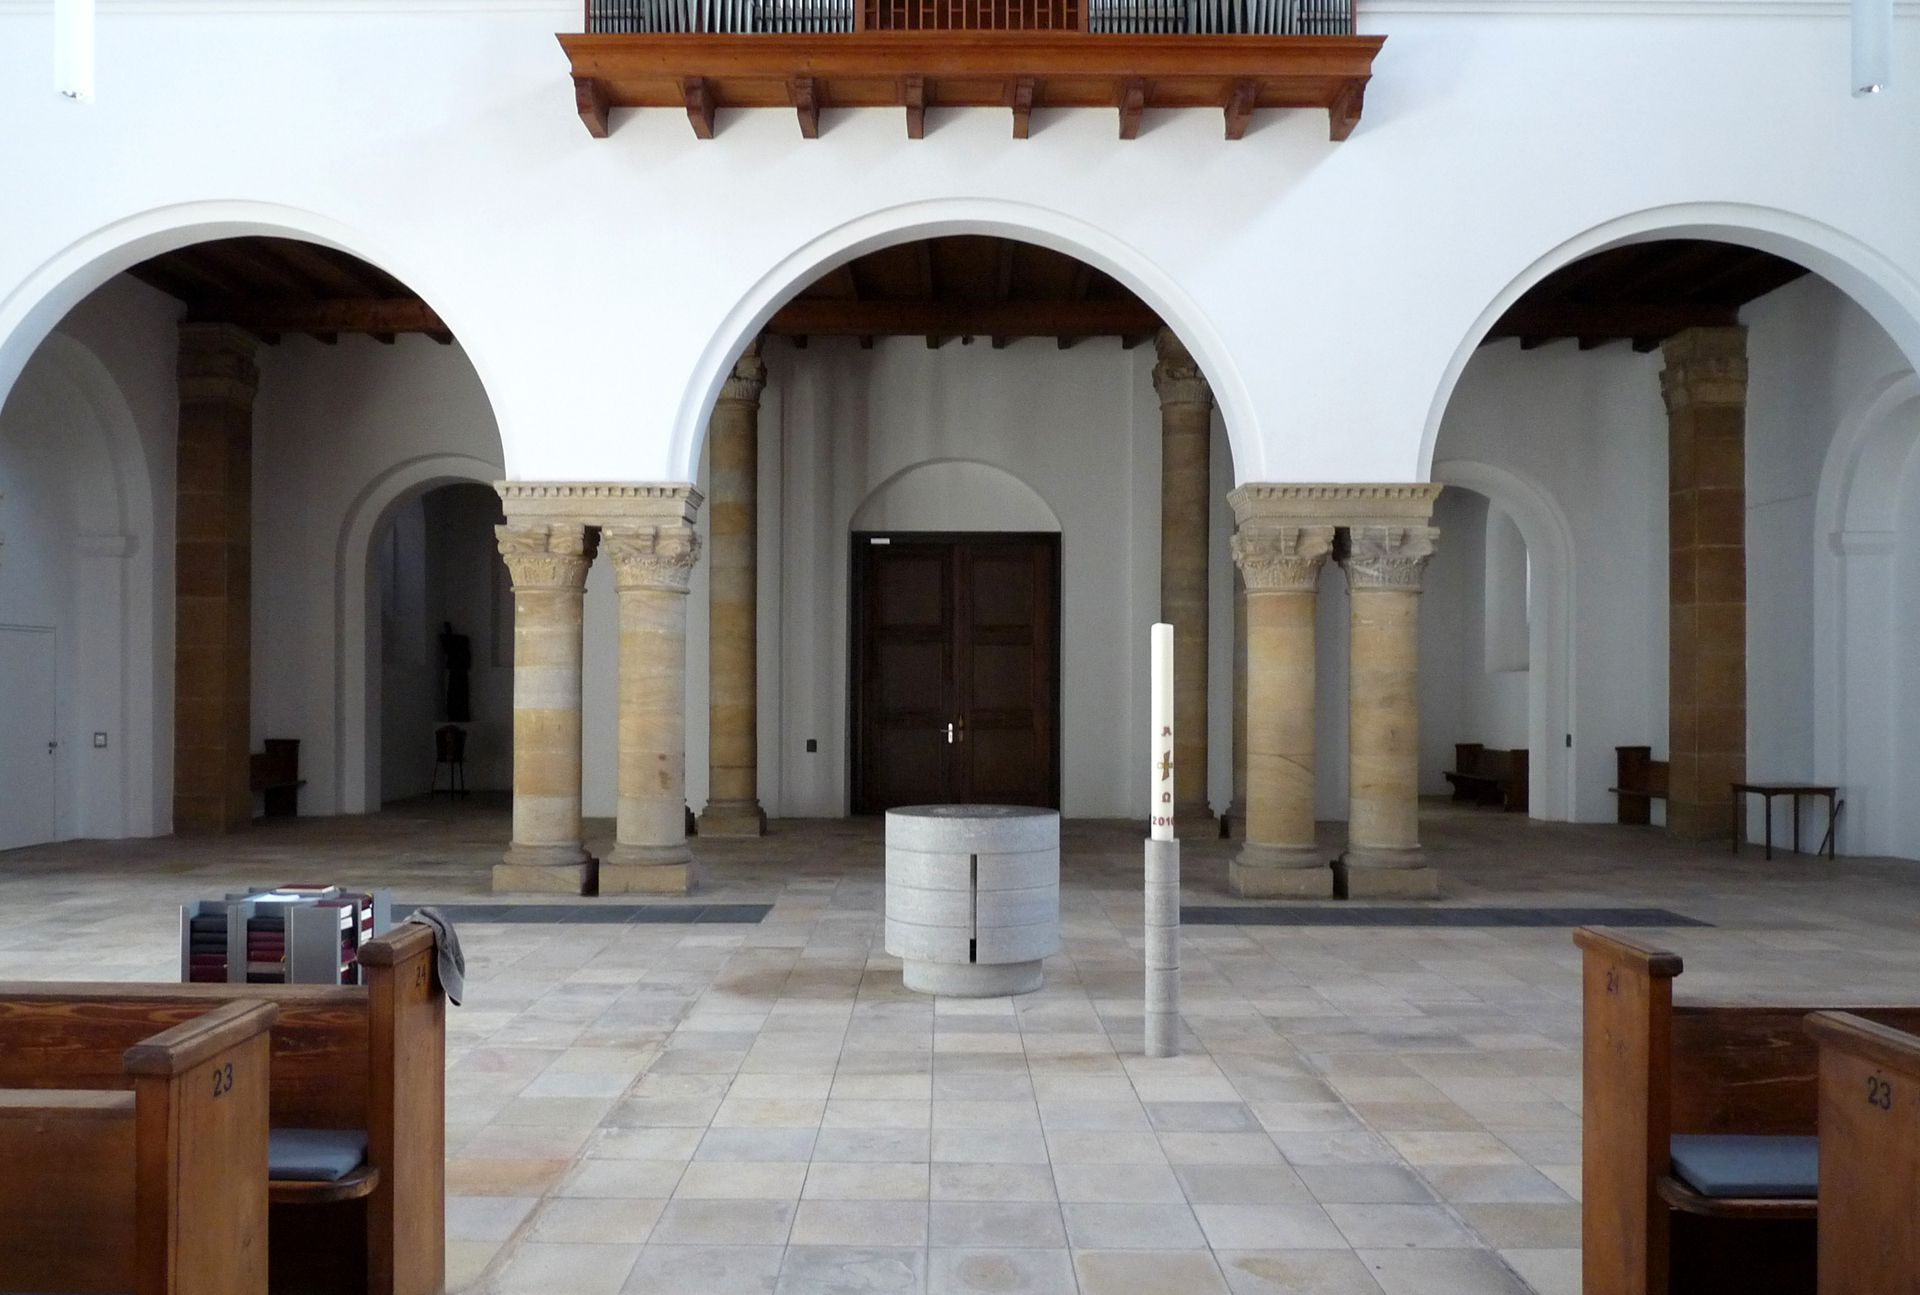 St. Ludwig Narthex